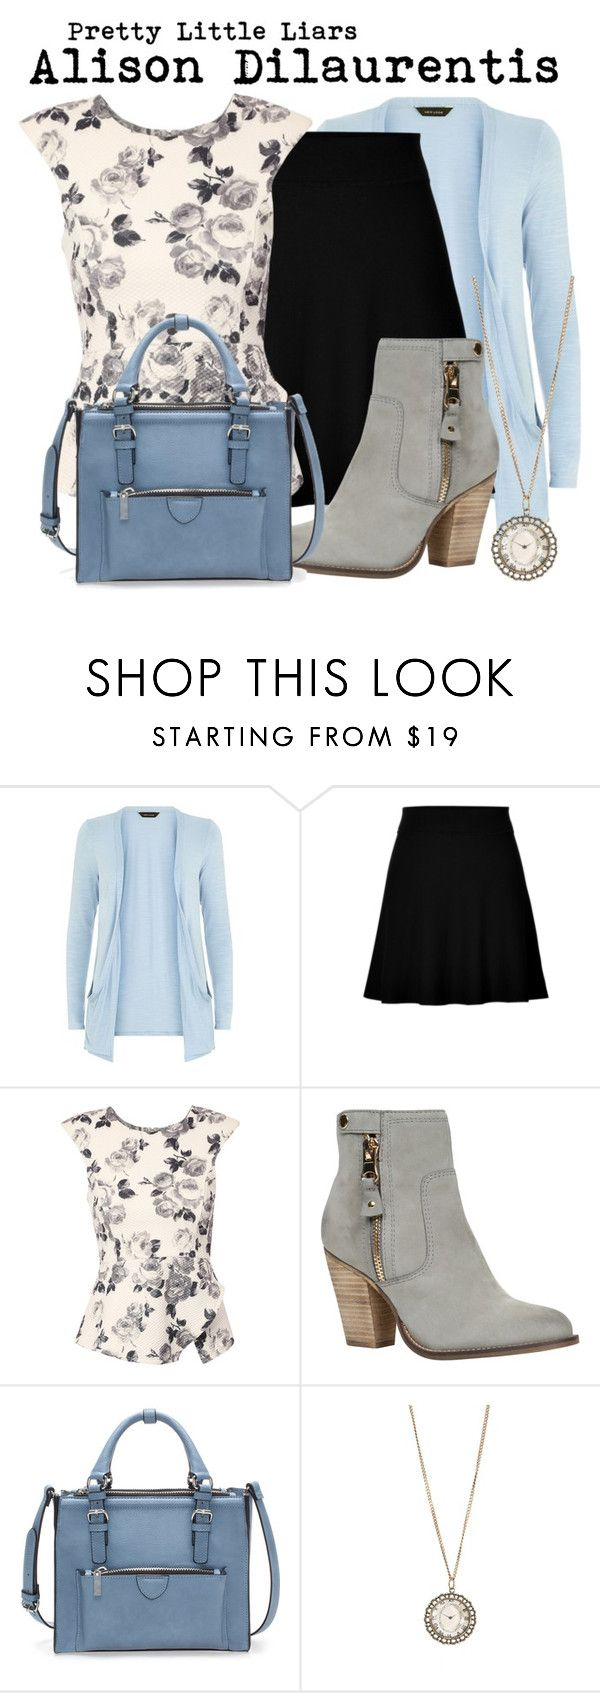 """""""Pretty Little Liars- Alison Dilaurentis"""" by darcy-watson ❤ liked on Polyvore featuring Theory, Jane Norman, ALDO, Zara and Aéropostale"""